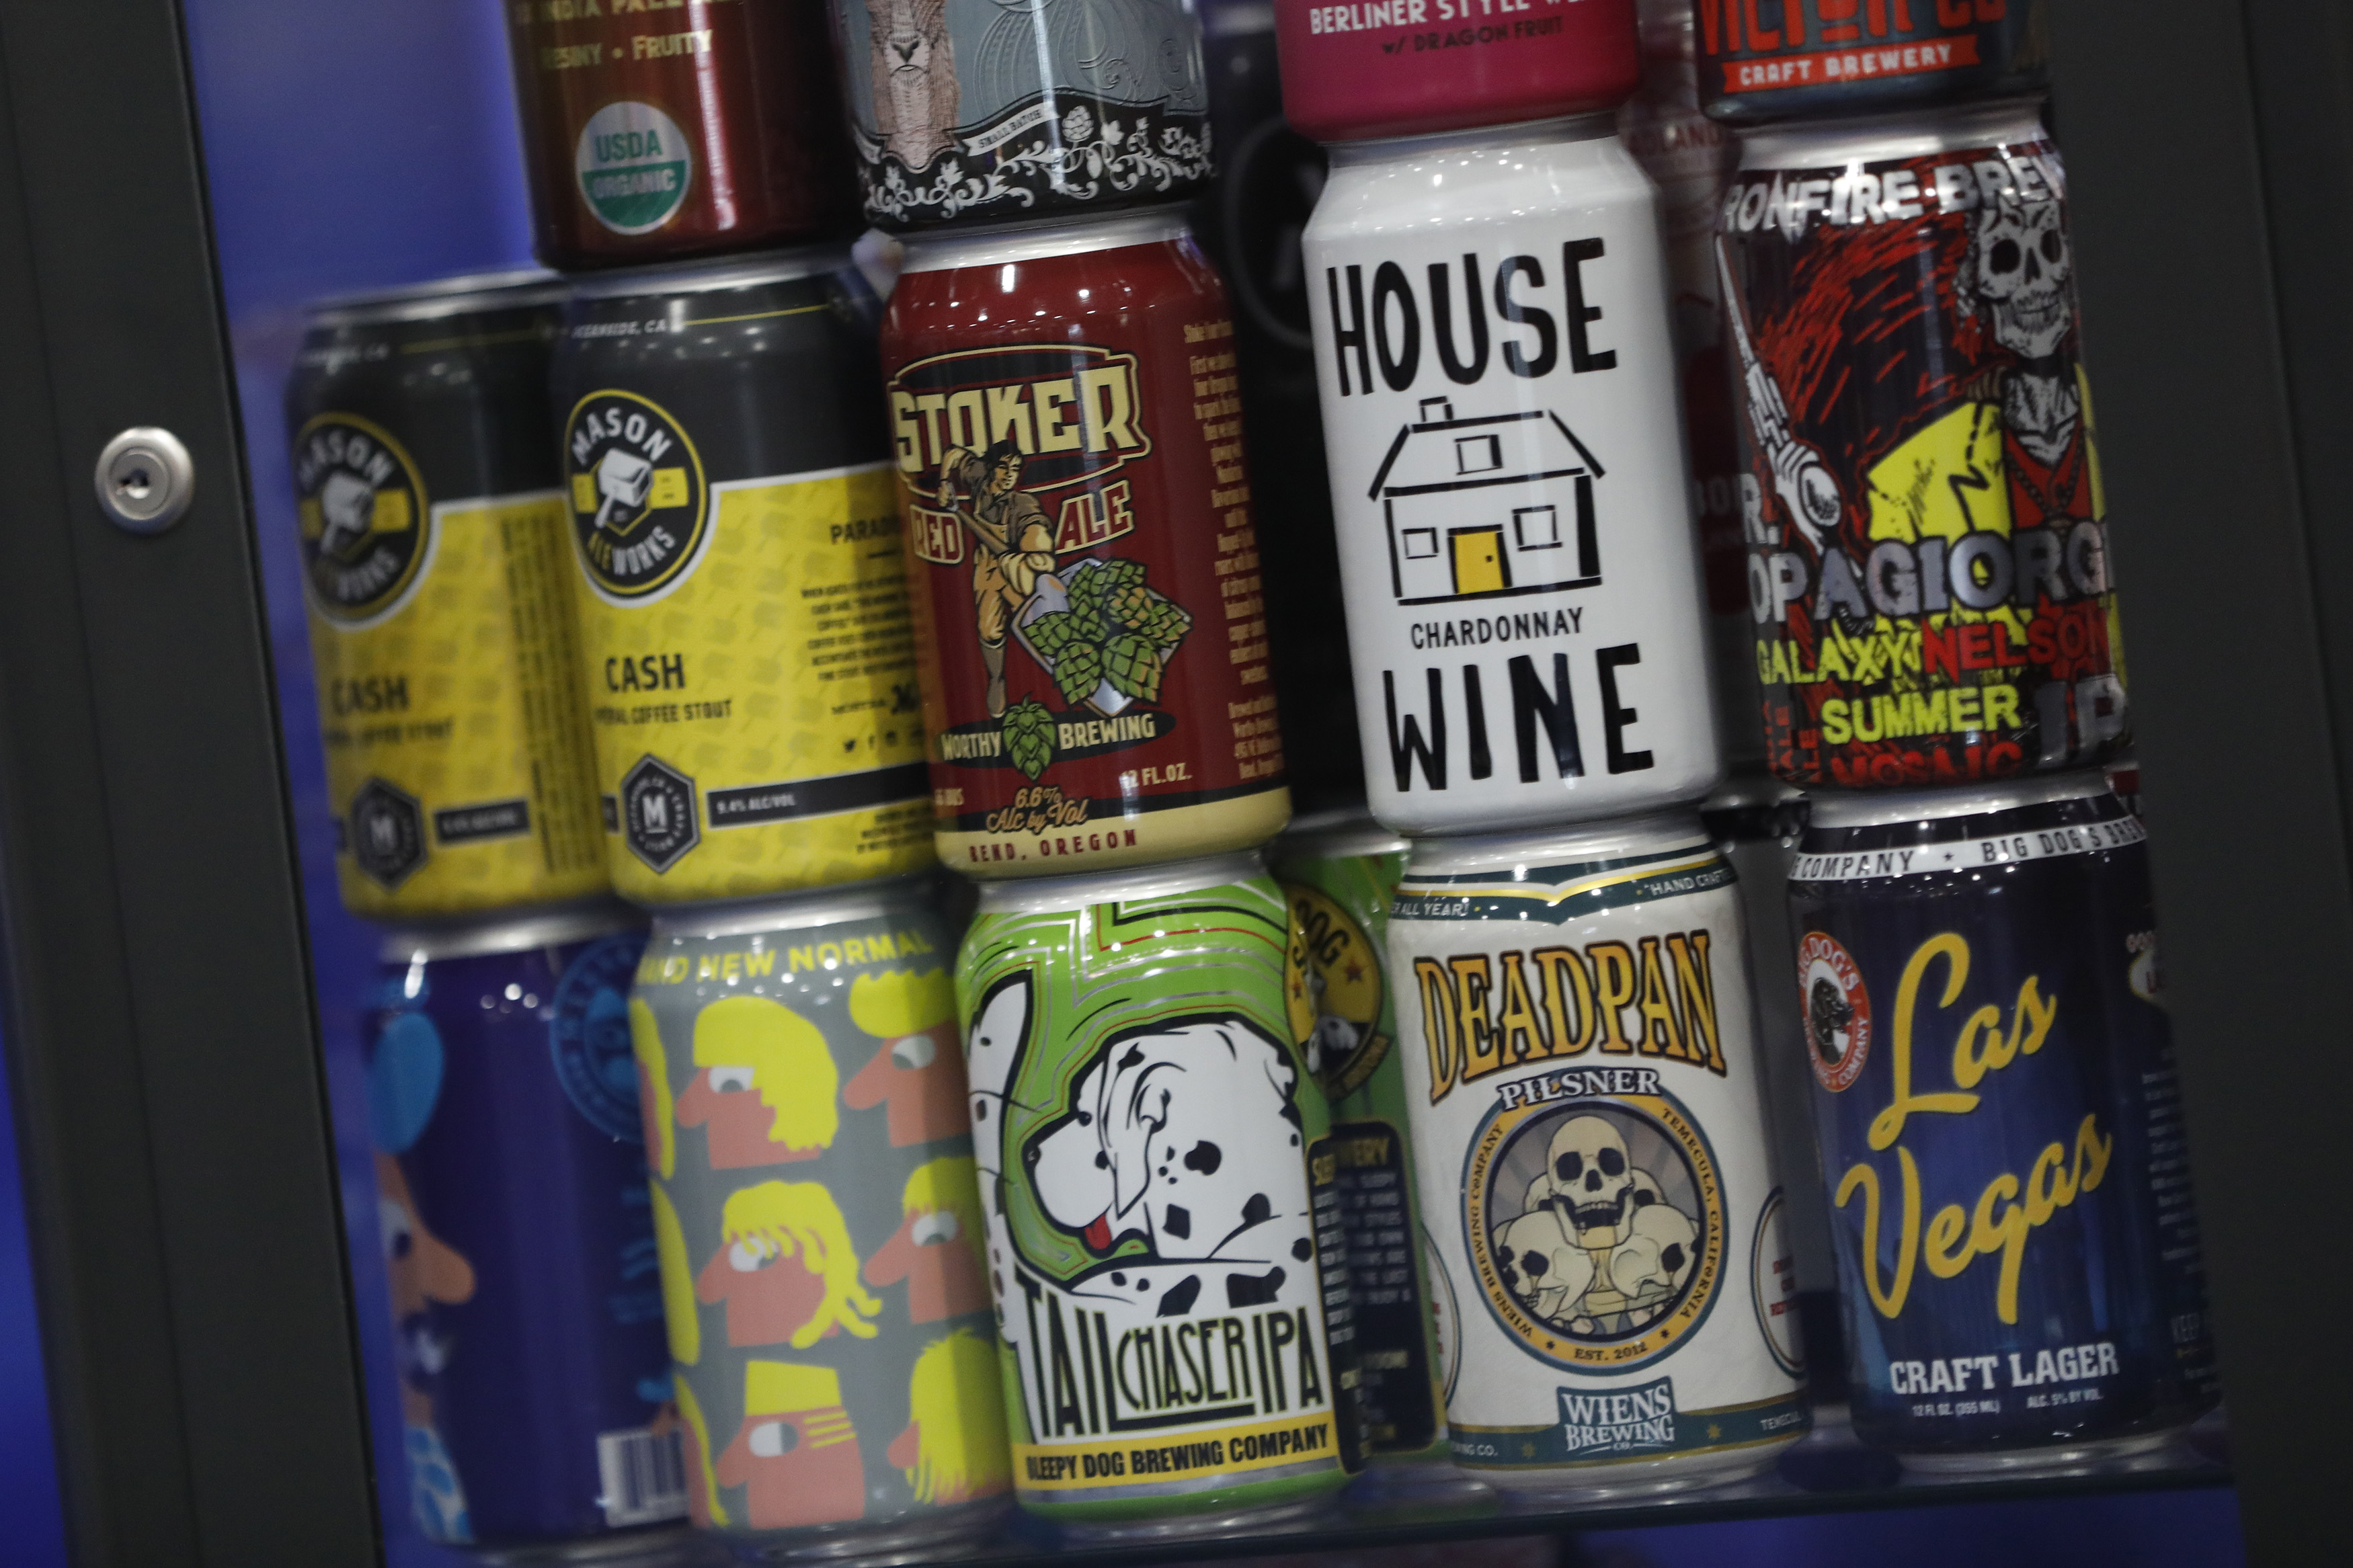 Craft Beer Industry's Annual Brewer's Conference Held In Washington, D.C.